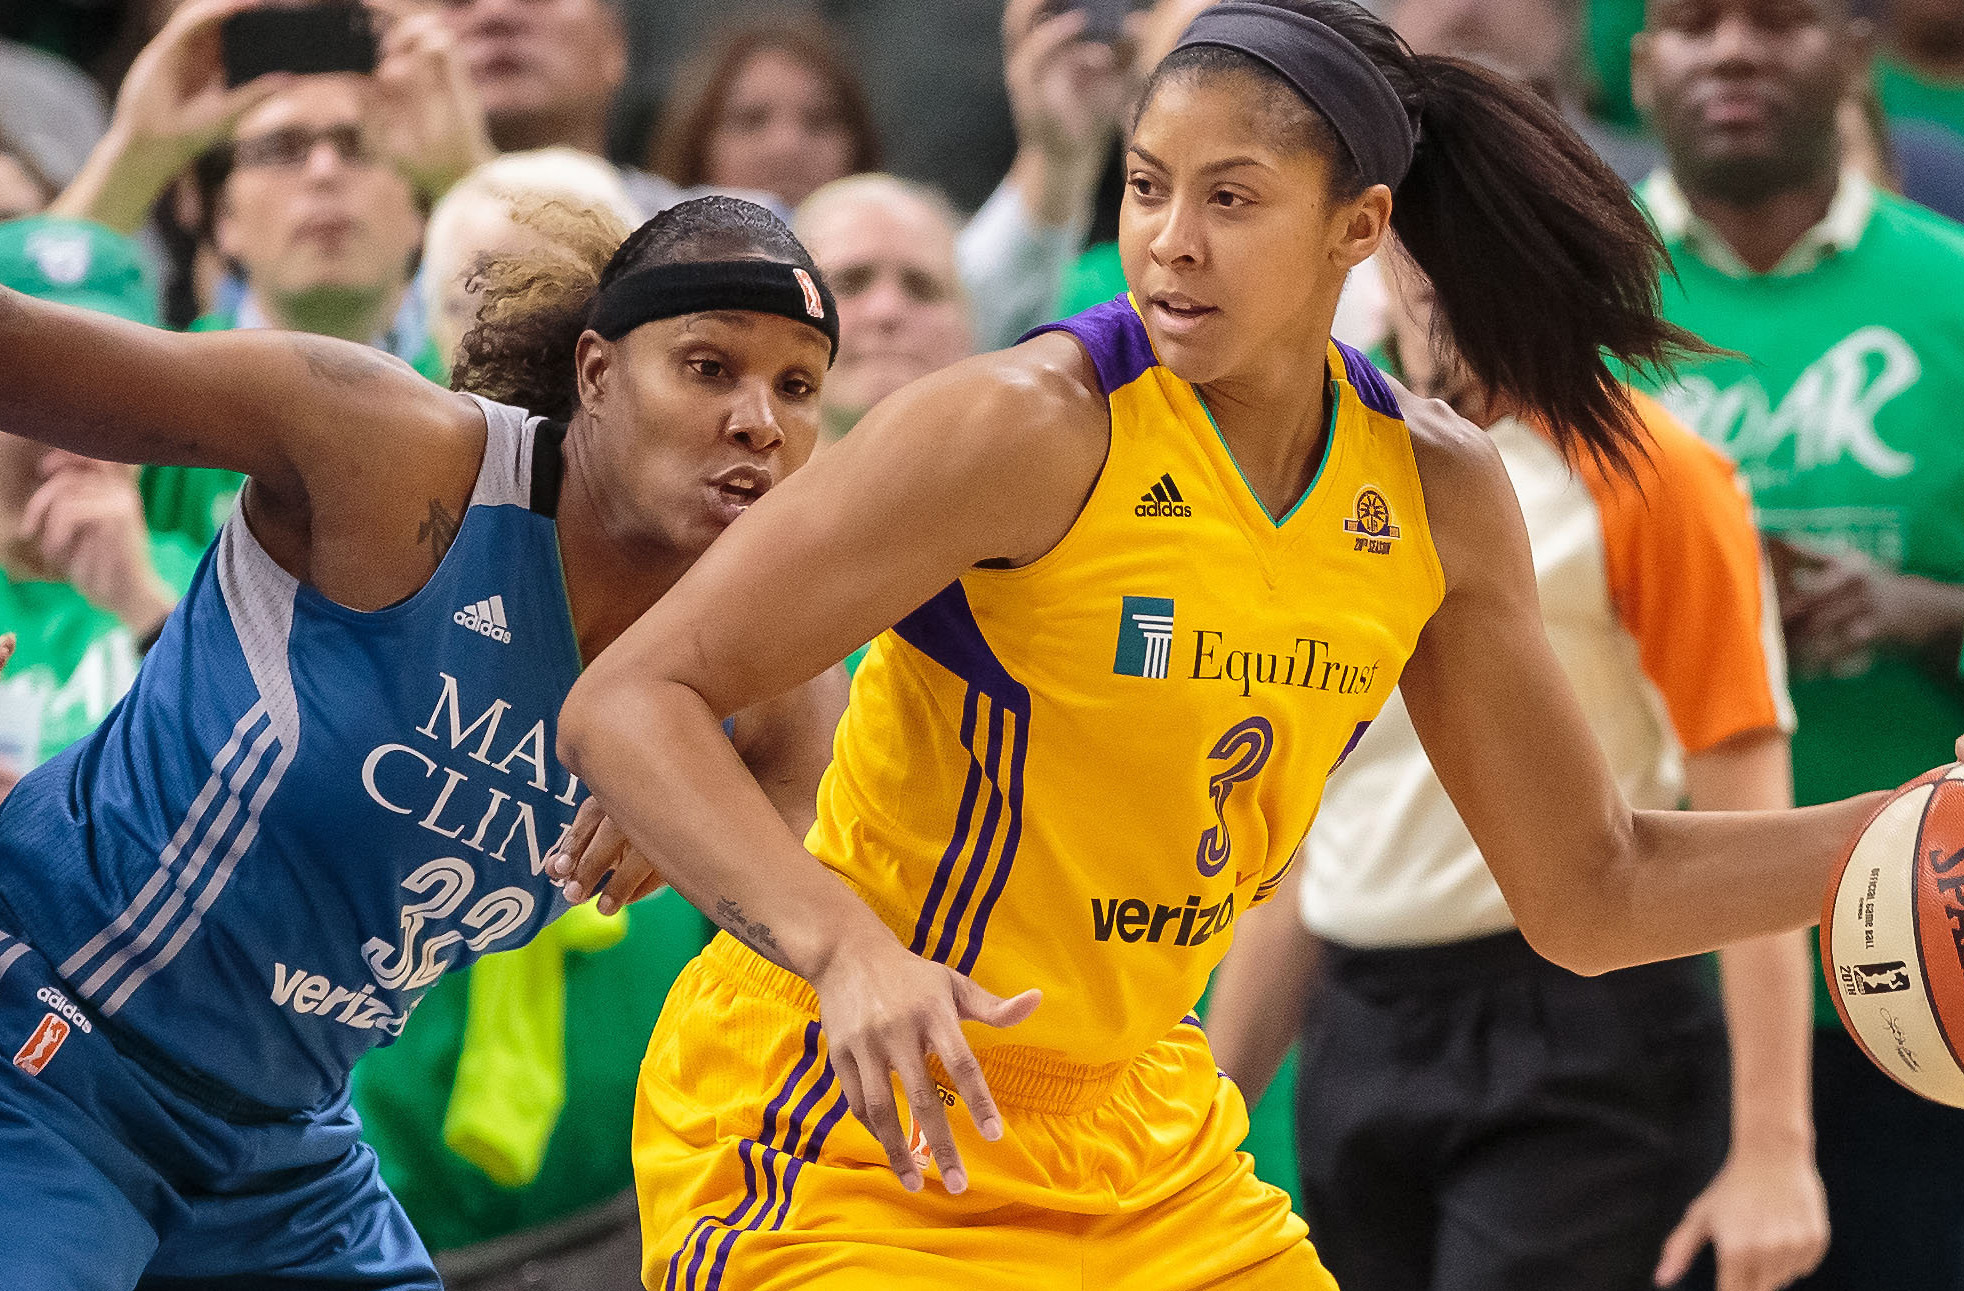 Four need-to-know notes for betting the 2017 WNBA season